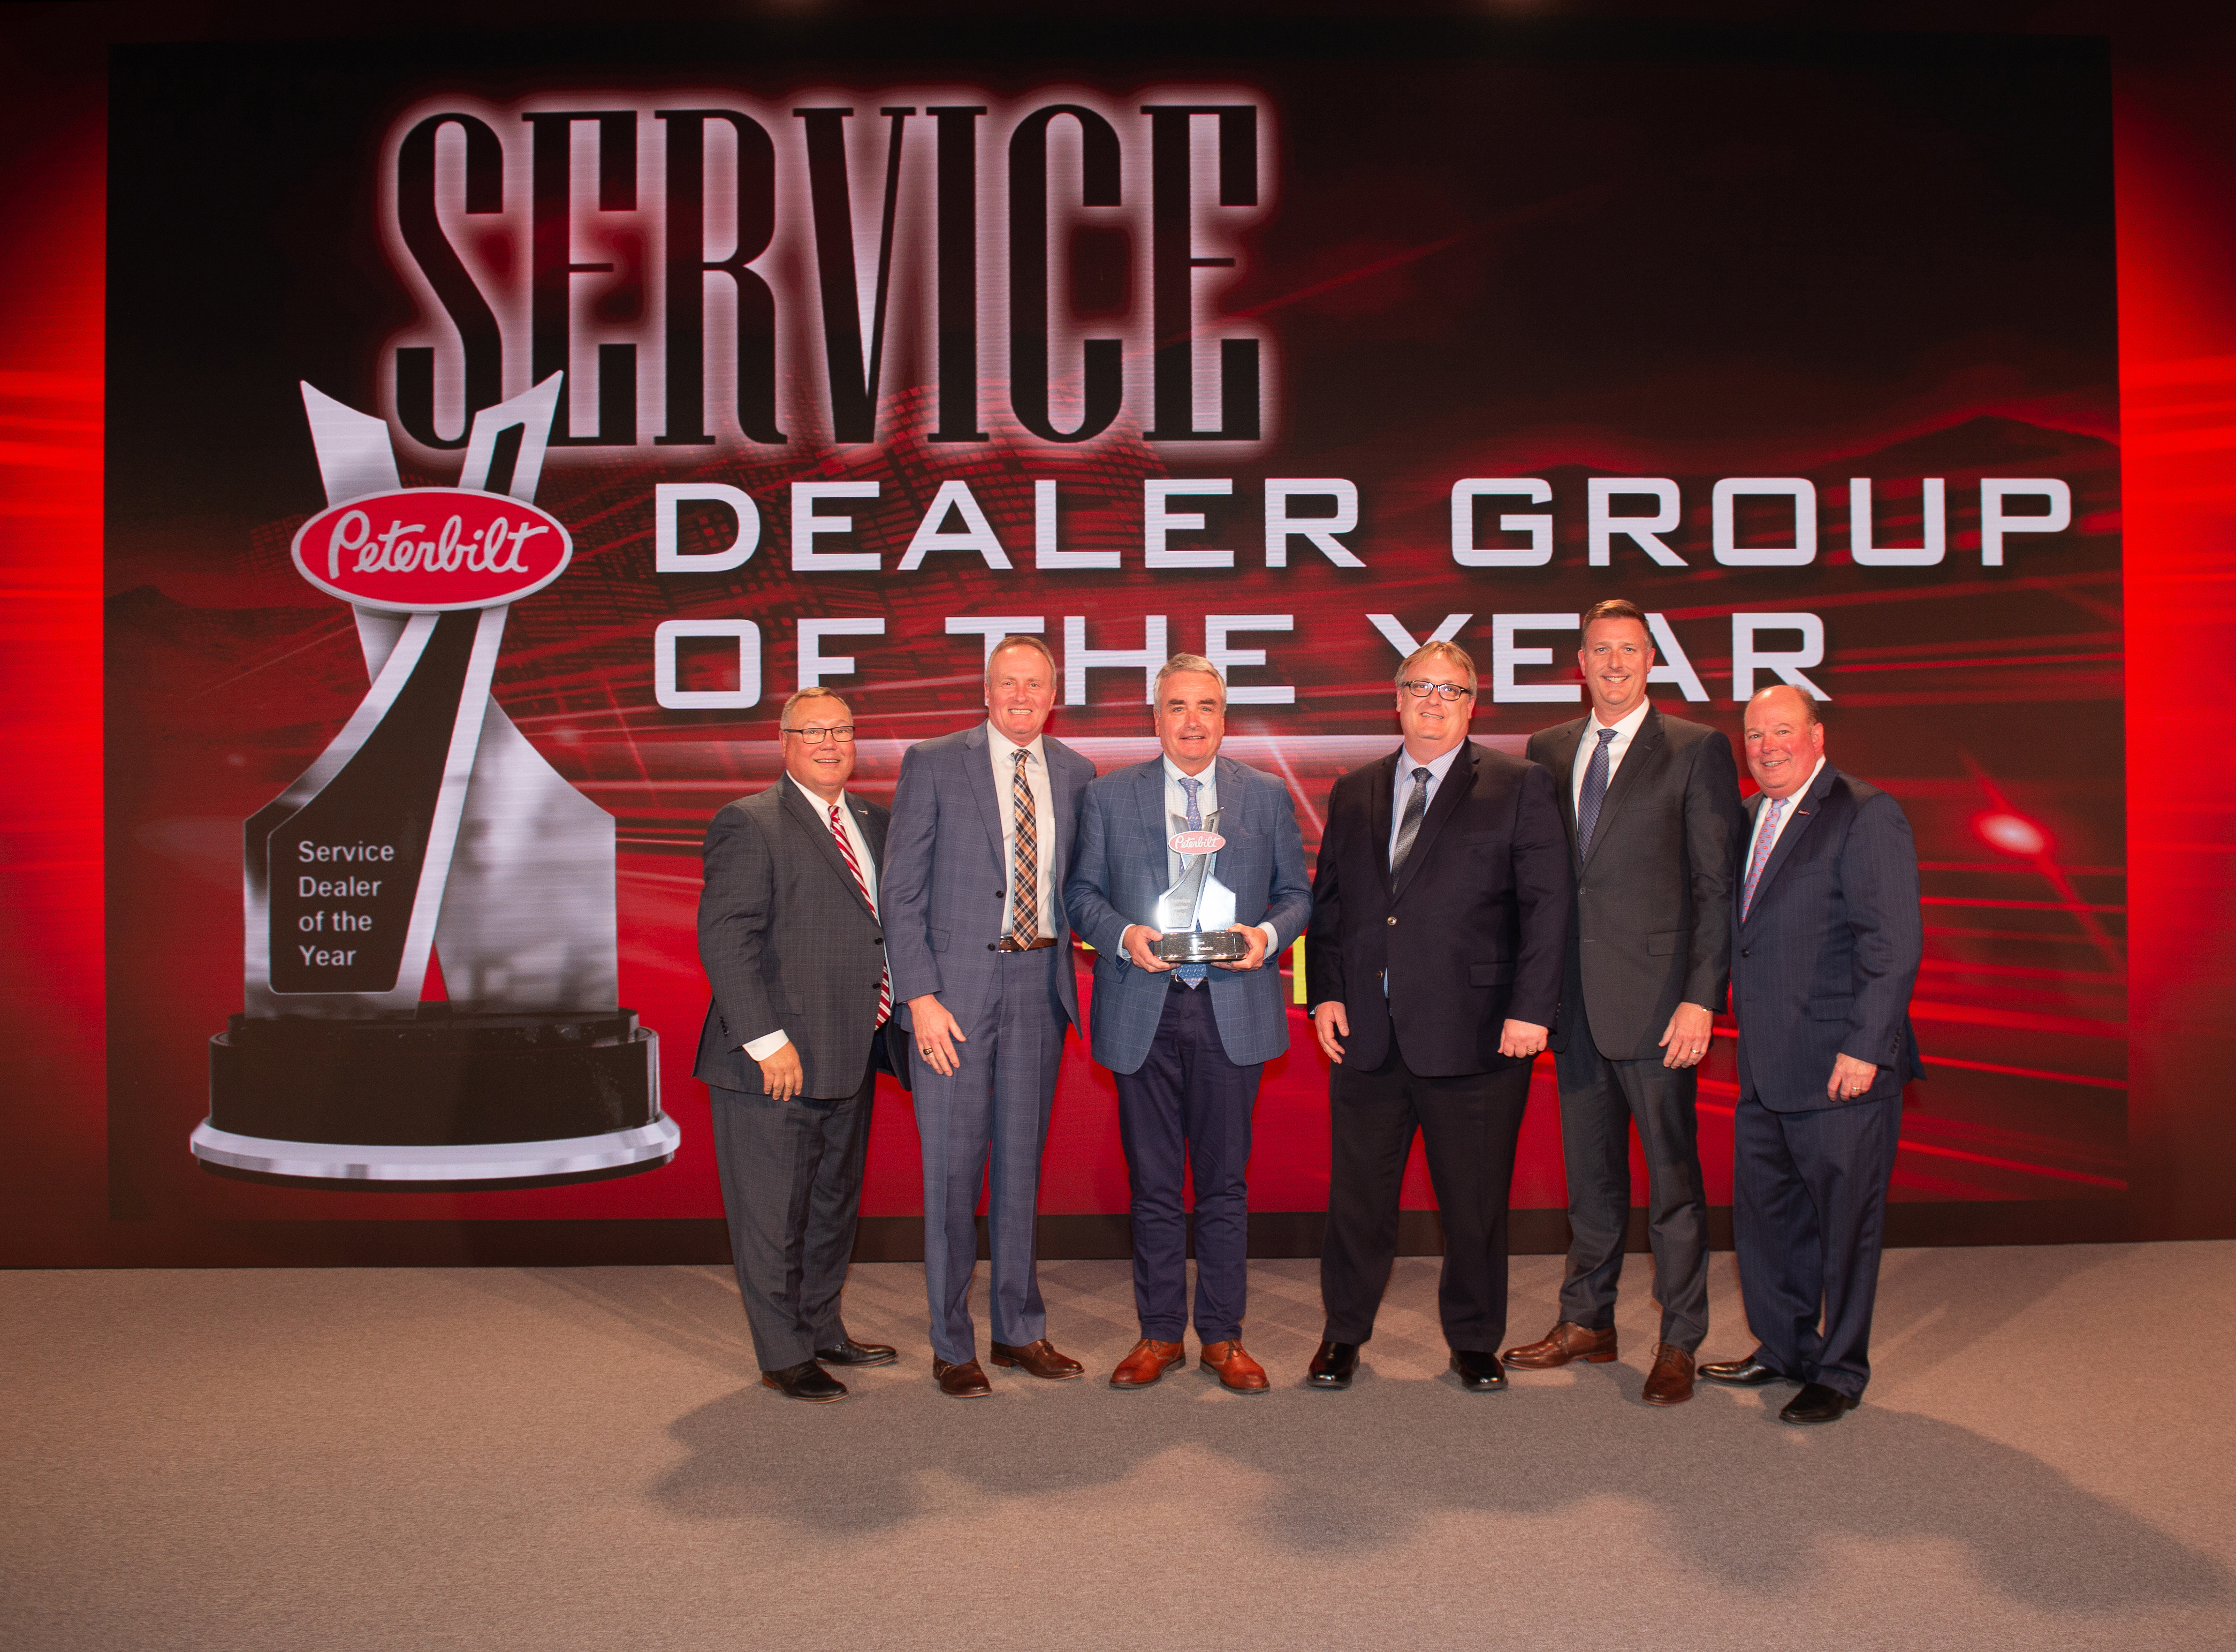 Service Dealer of the Year: TLG Peterbilt